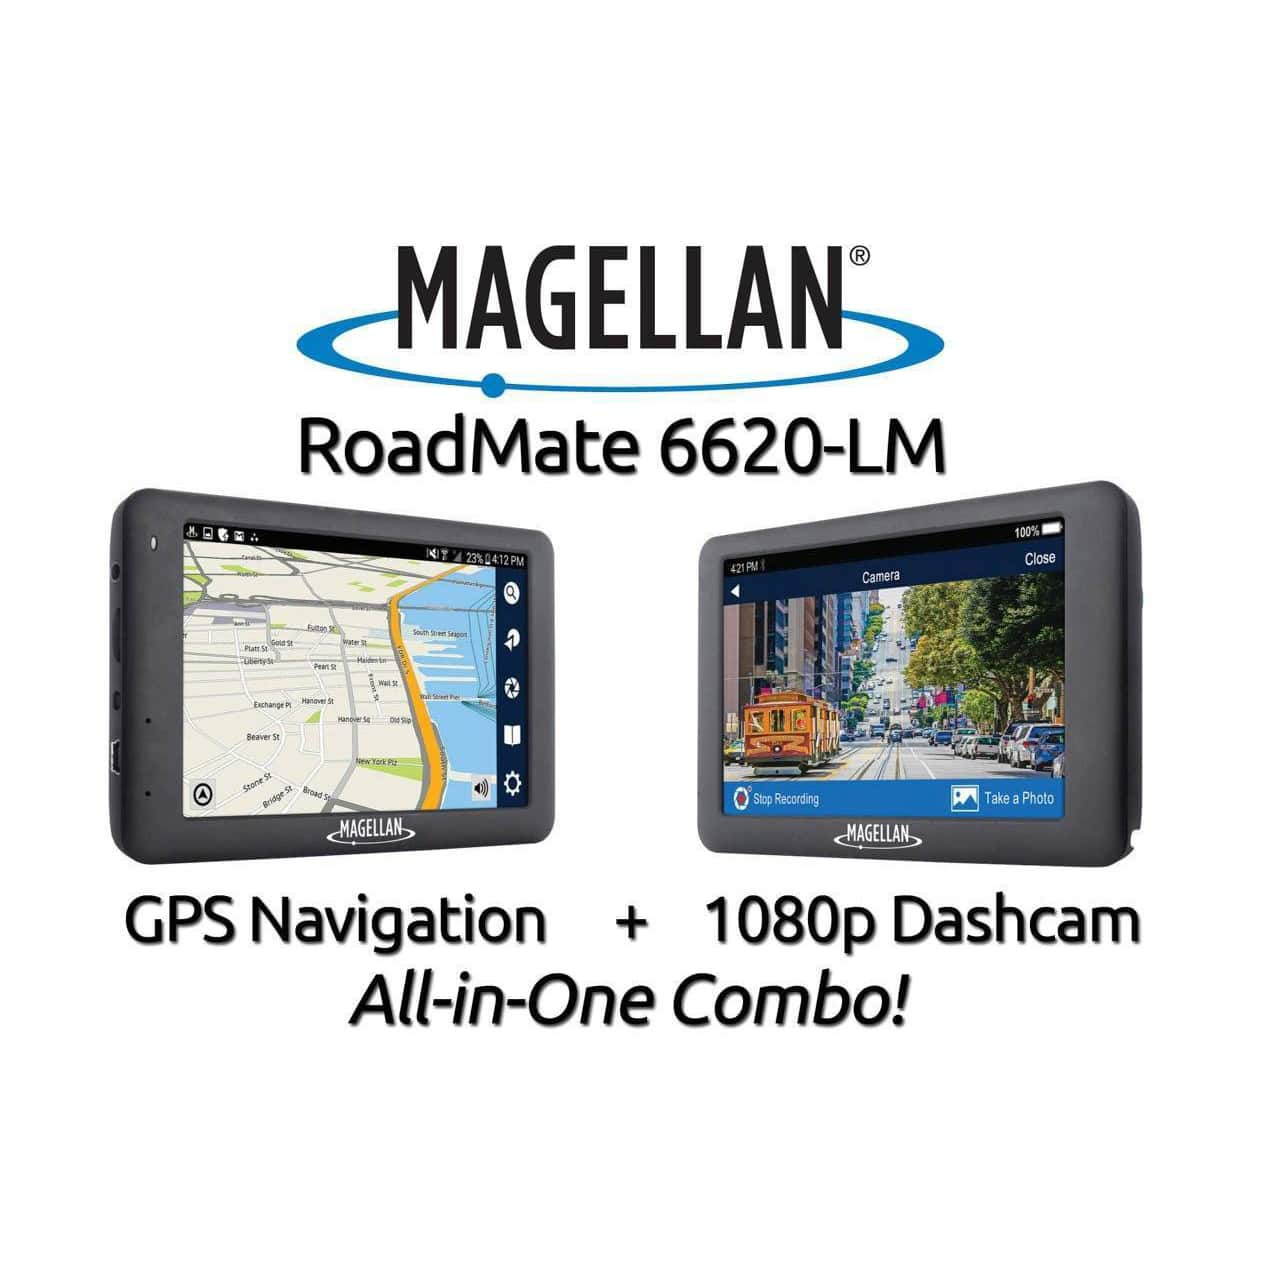 "Magellan RoadMate 6620-LM GPS + 1080p HD Dash Cam Combo 5"" Lifetime Map Updates $55.19 AC + Free Shipping"